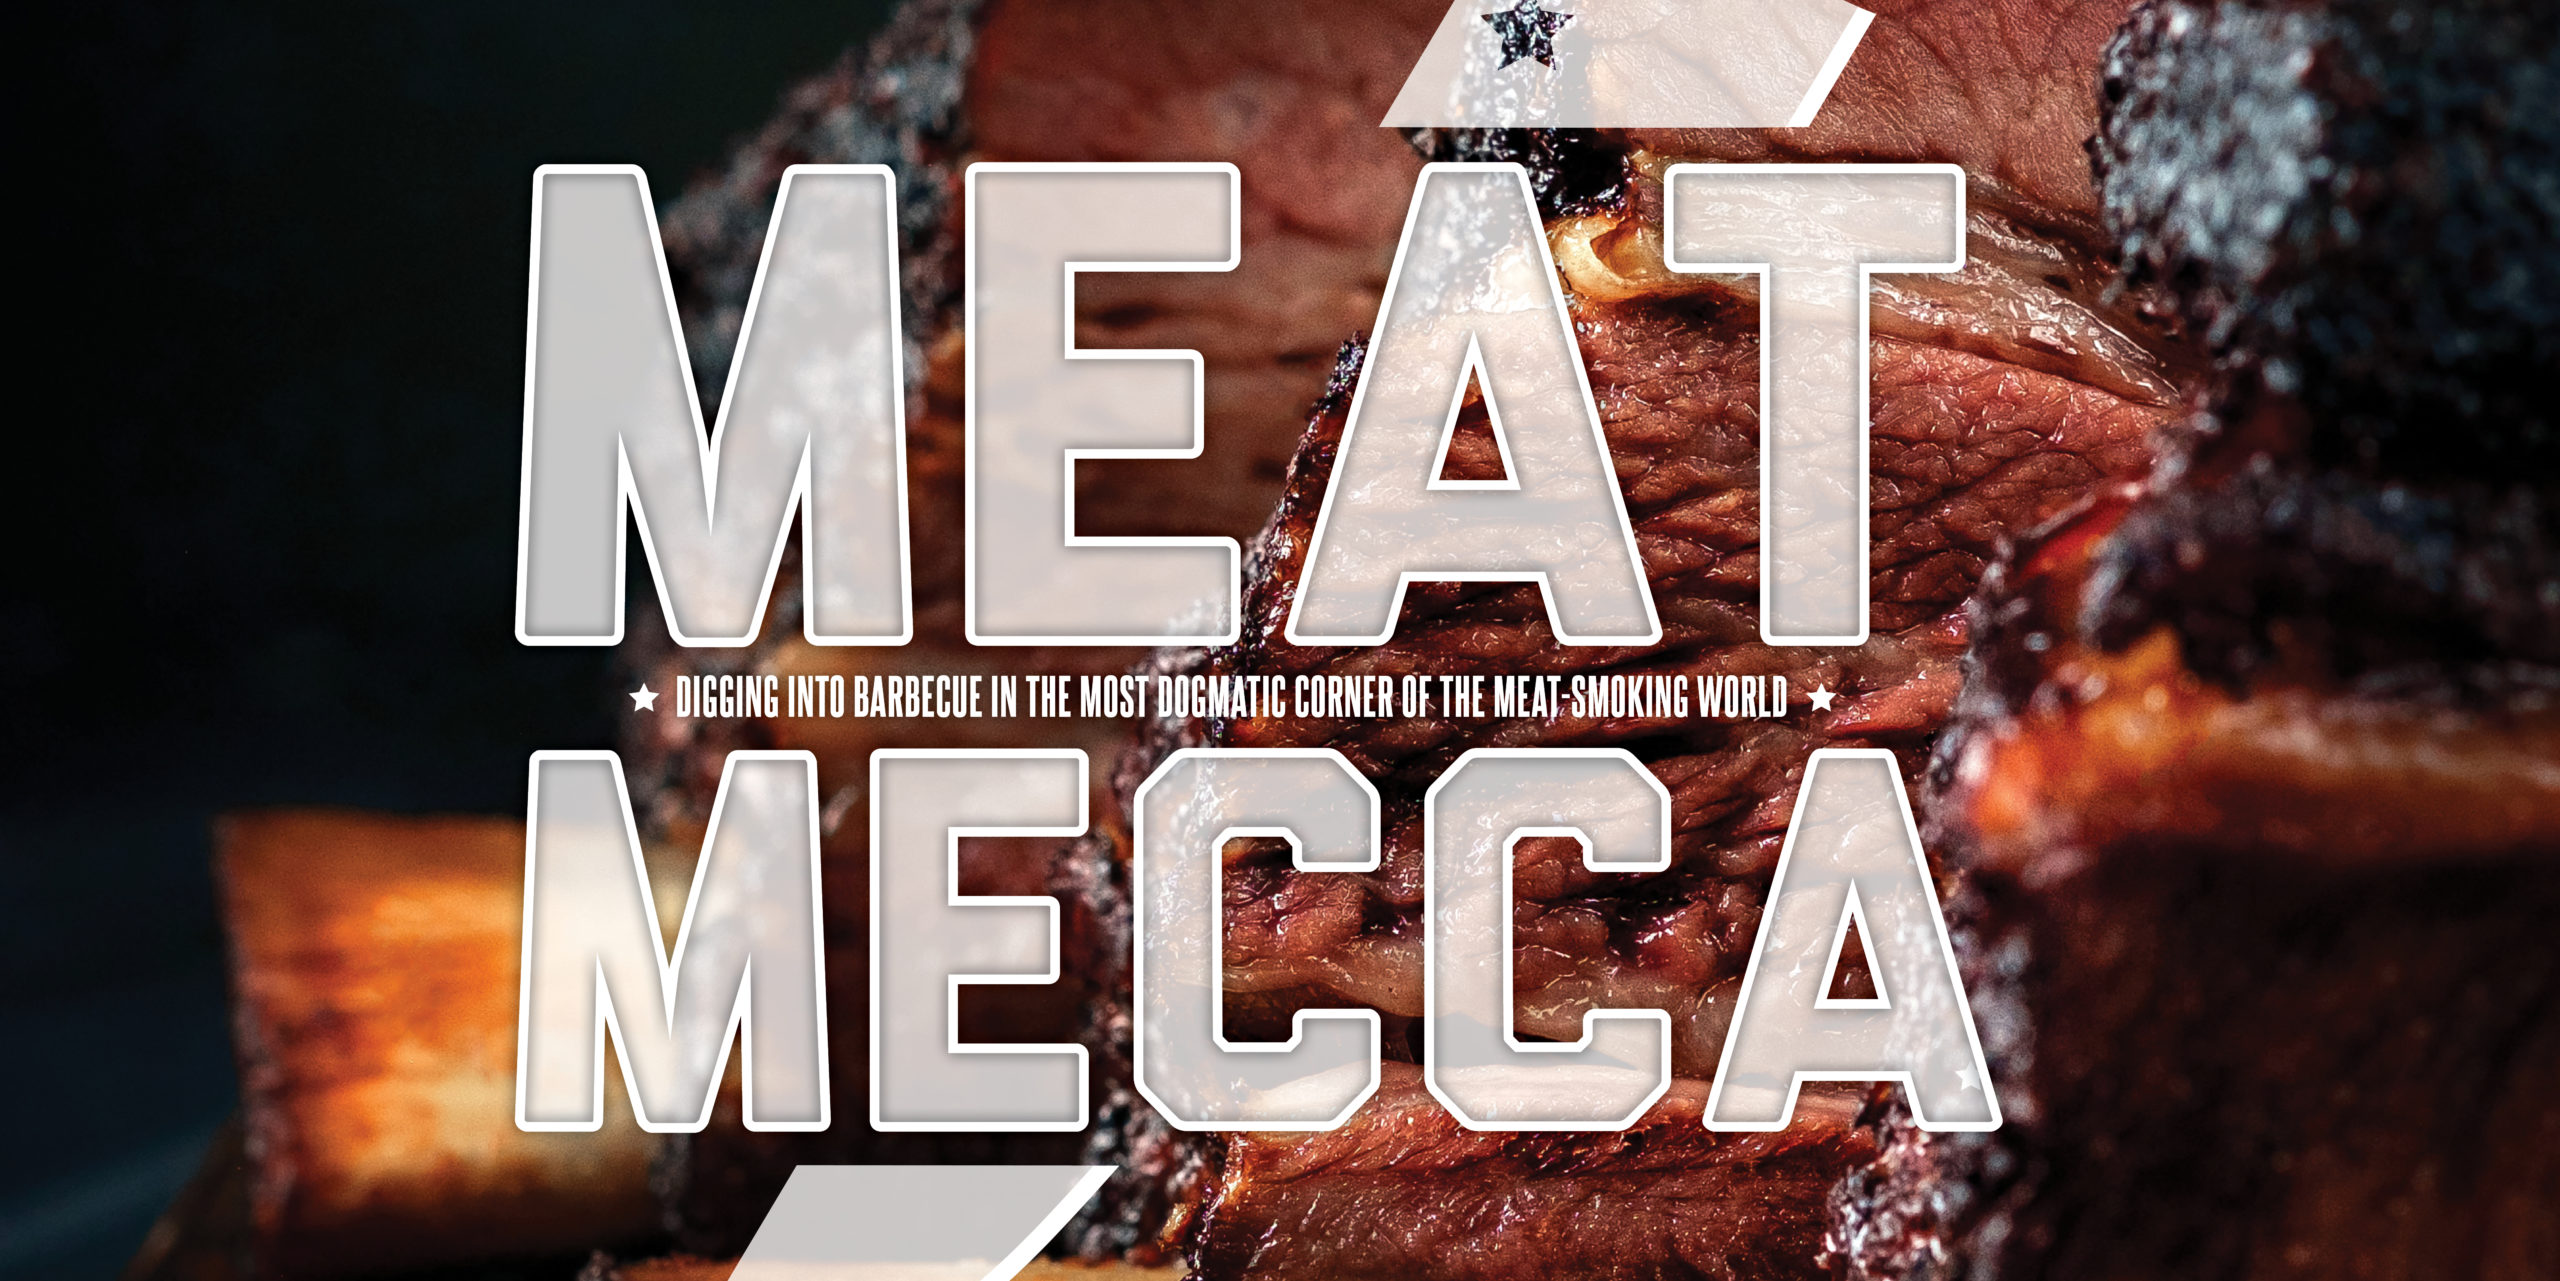 Meat Mecca